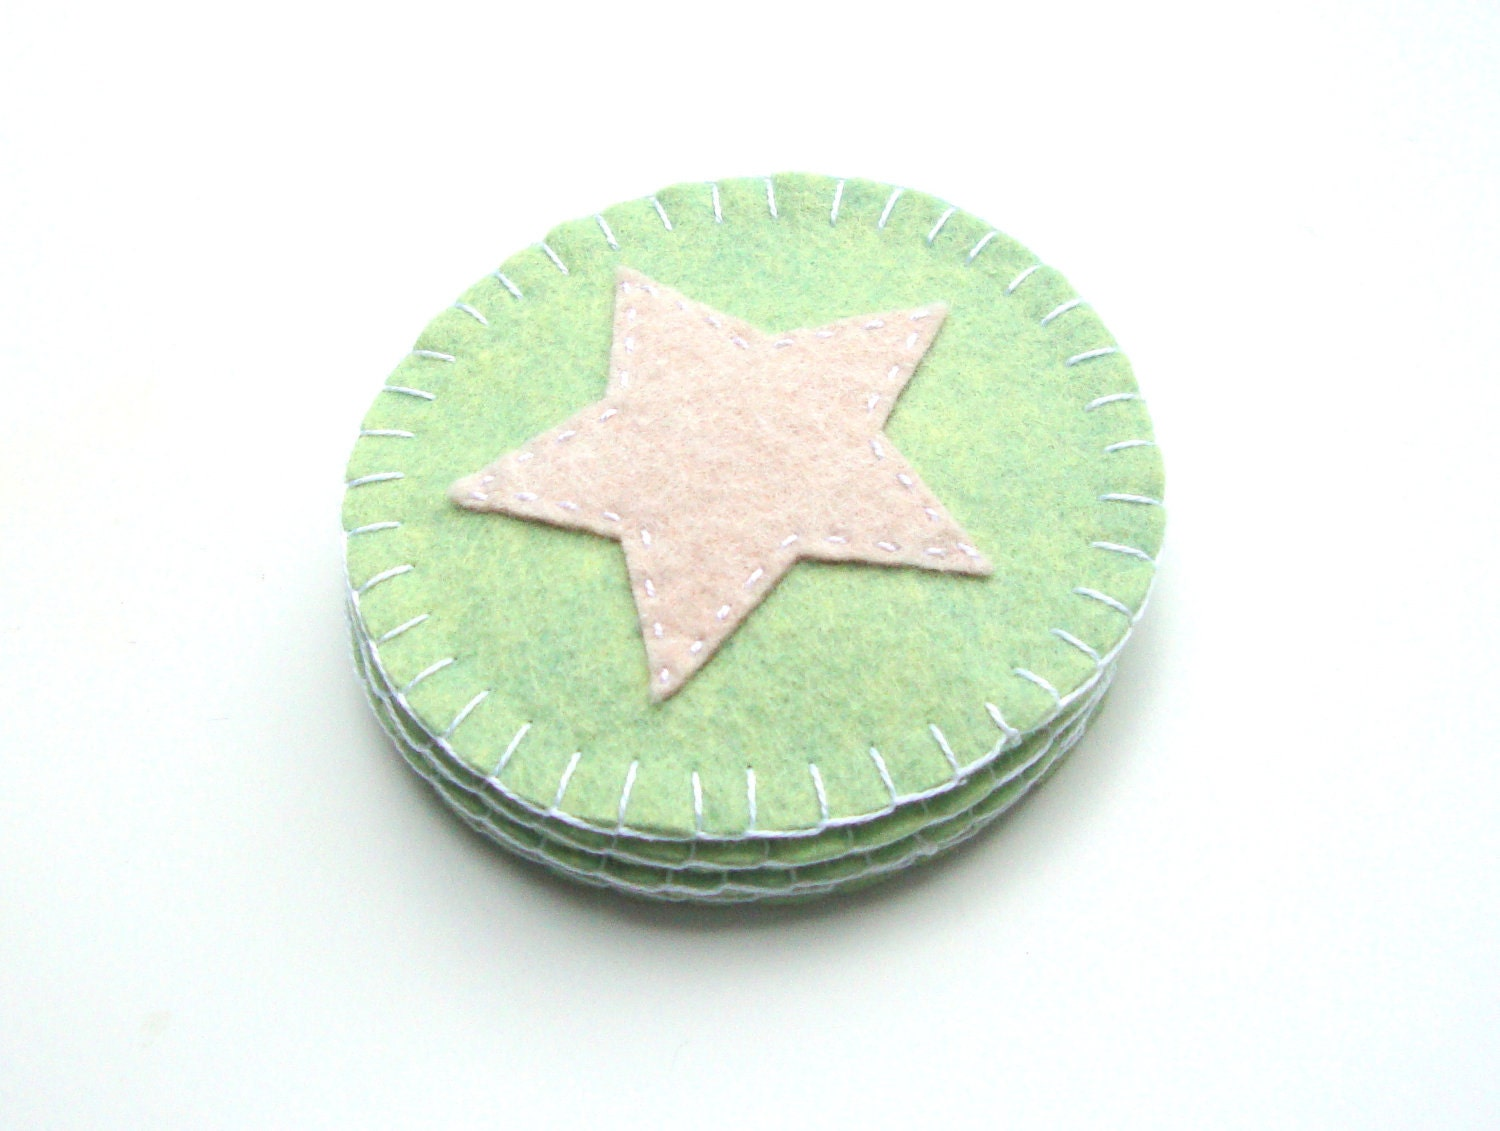 Mint Green and Beige Felt Coasters - Pastel, Star, Celestial, Handmade Home Decor - MartyMakes